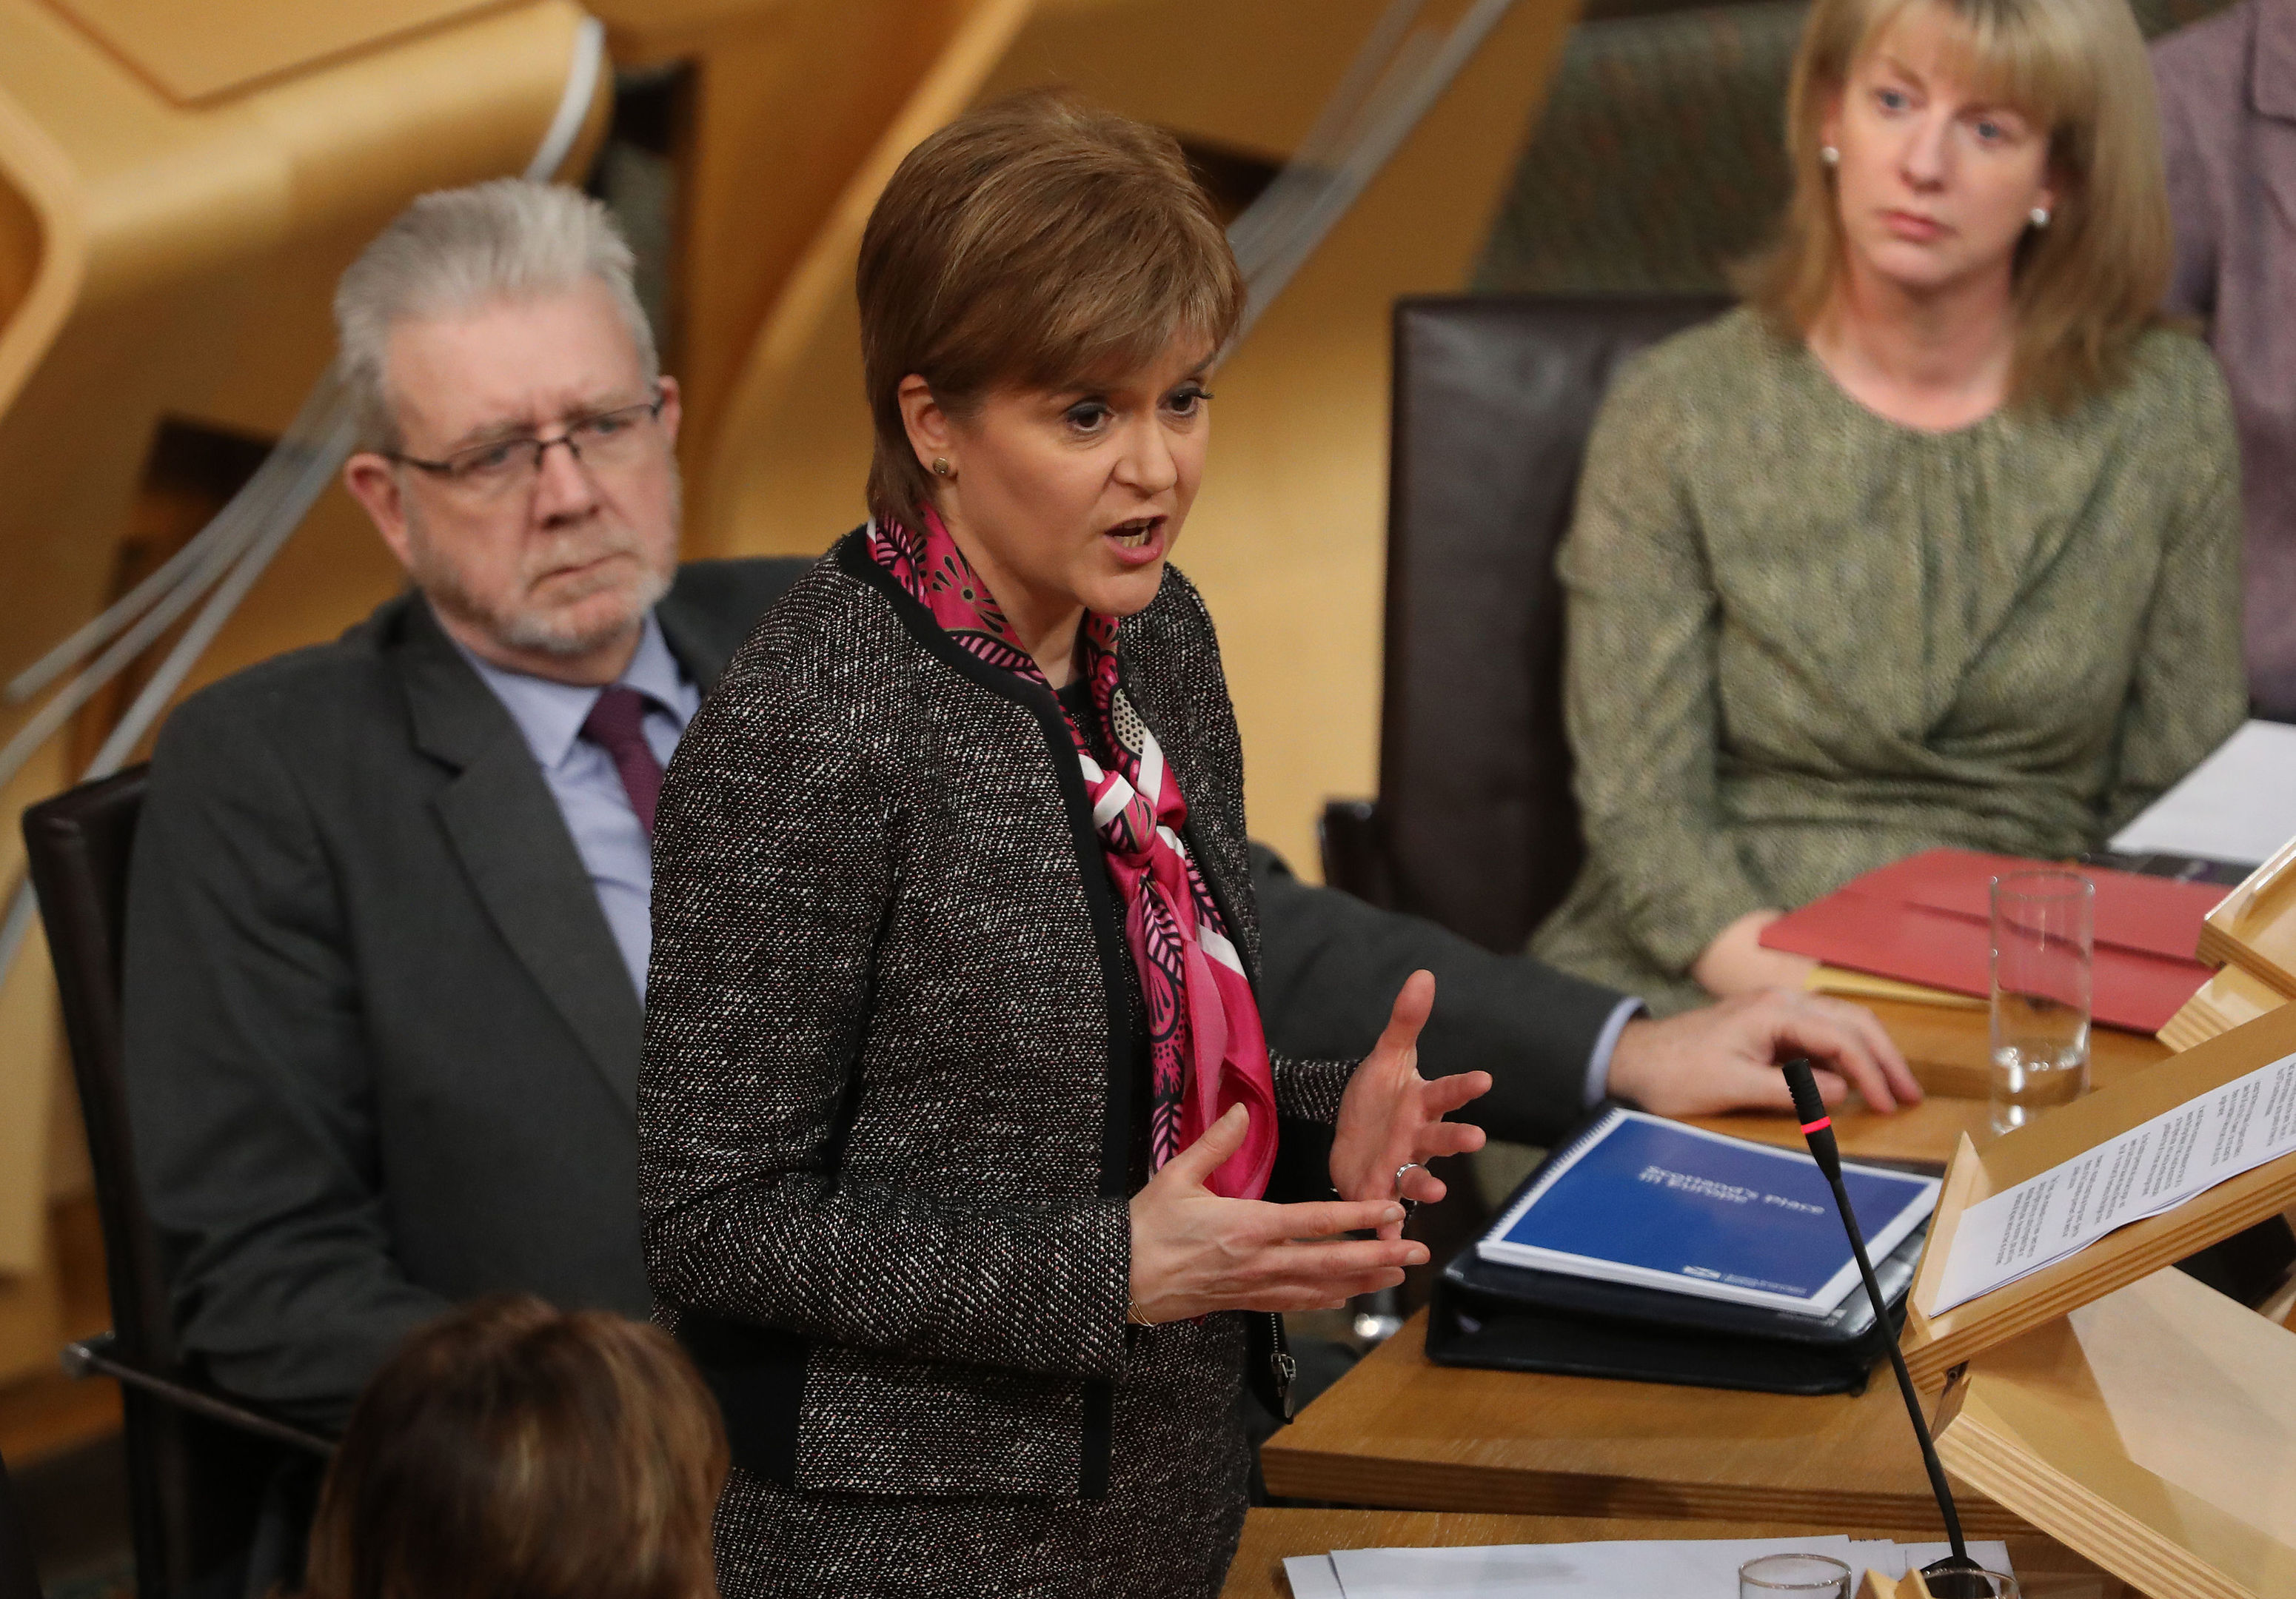 First Minister Nicola Sturgeon gives a statement on the Scottish Government's position on Brexit (Andrew Milligan/PA Wire)